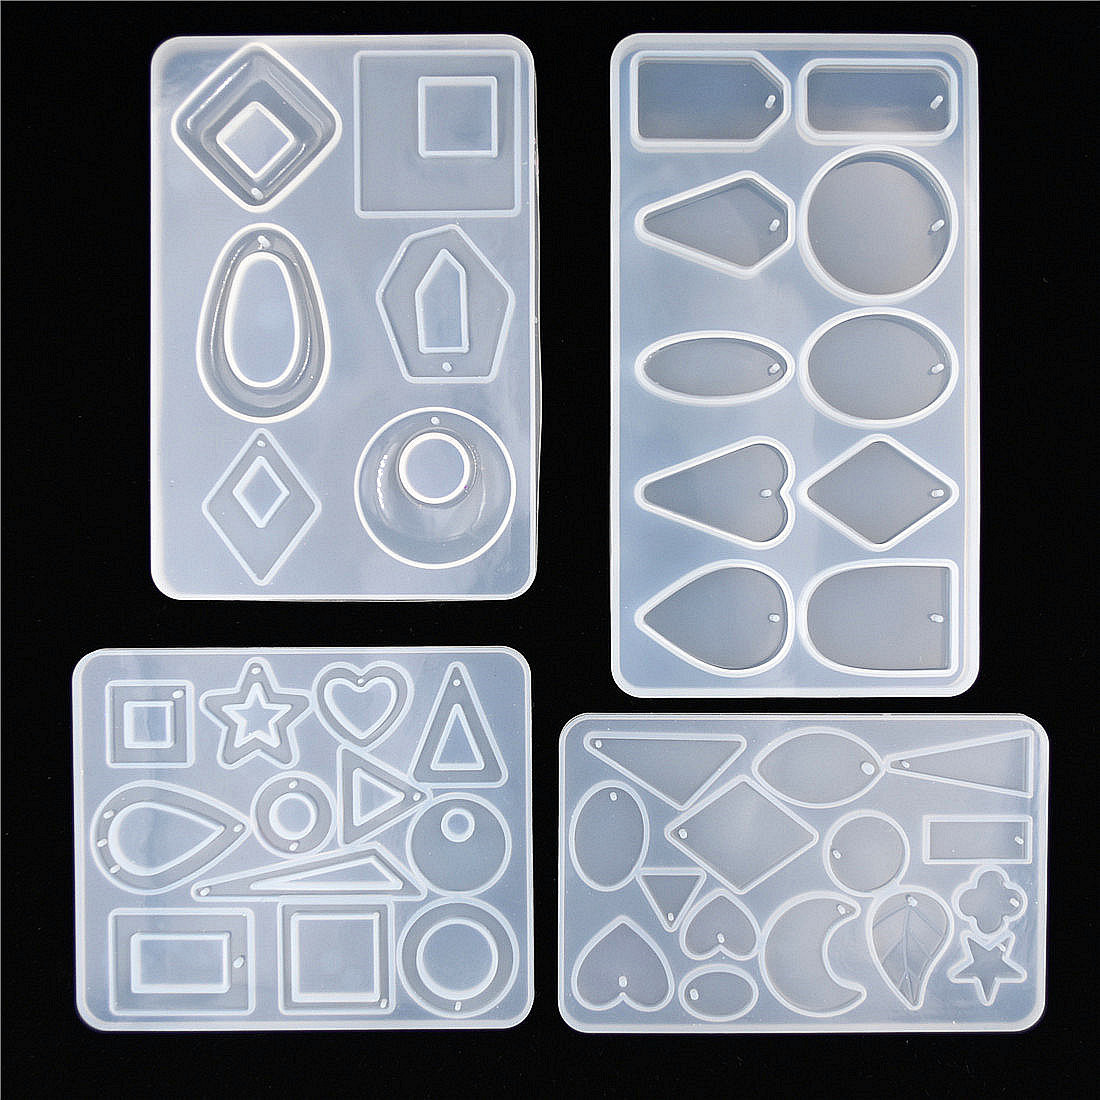 1X SNASAN Silicone Mold For Jewelry Findings Pendant Resin Silicone Mould Crafts Jewelry Making Charms Epoxy Resin Molds DZ40